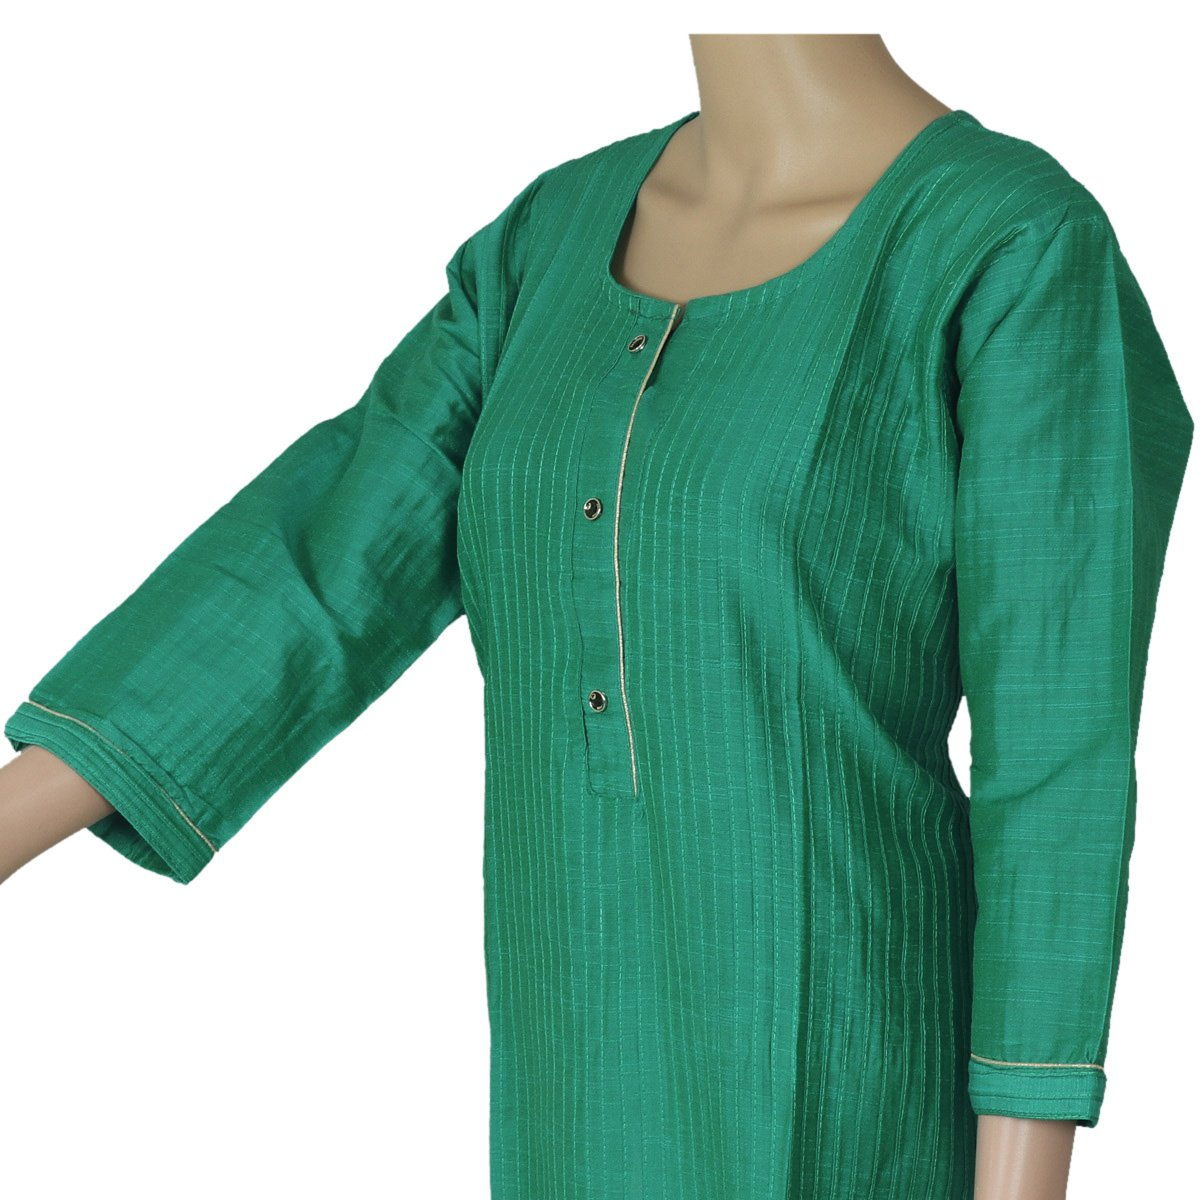 Raw Silk Kurta Light Green with Buttons and Simple design